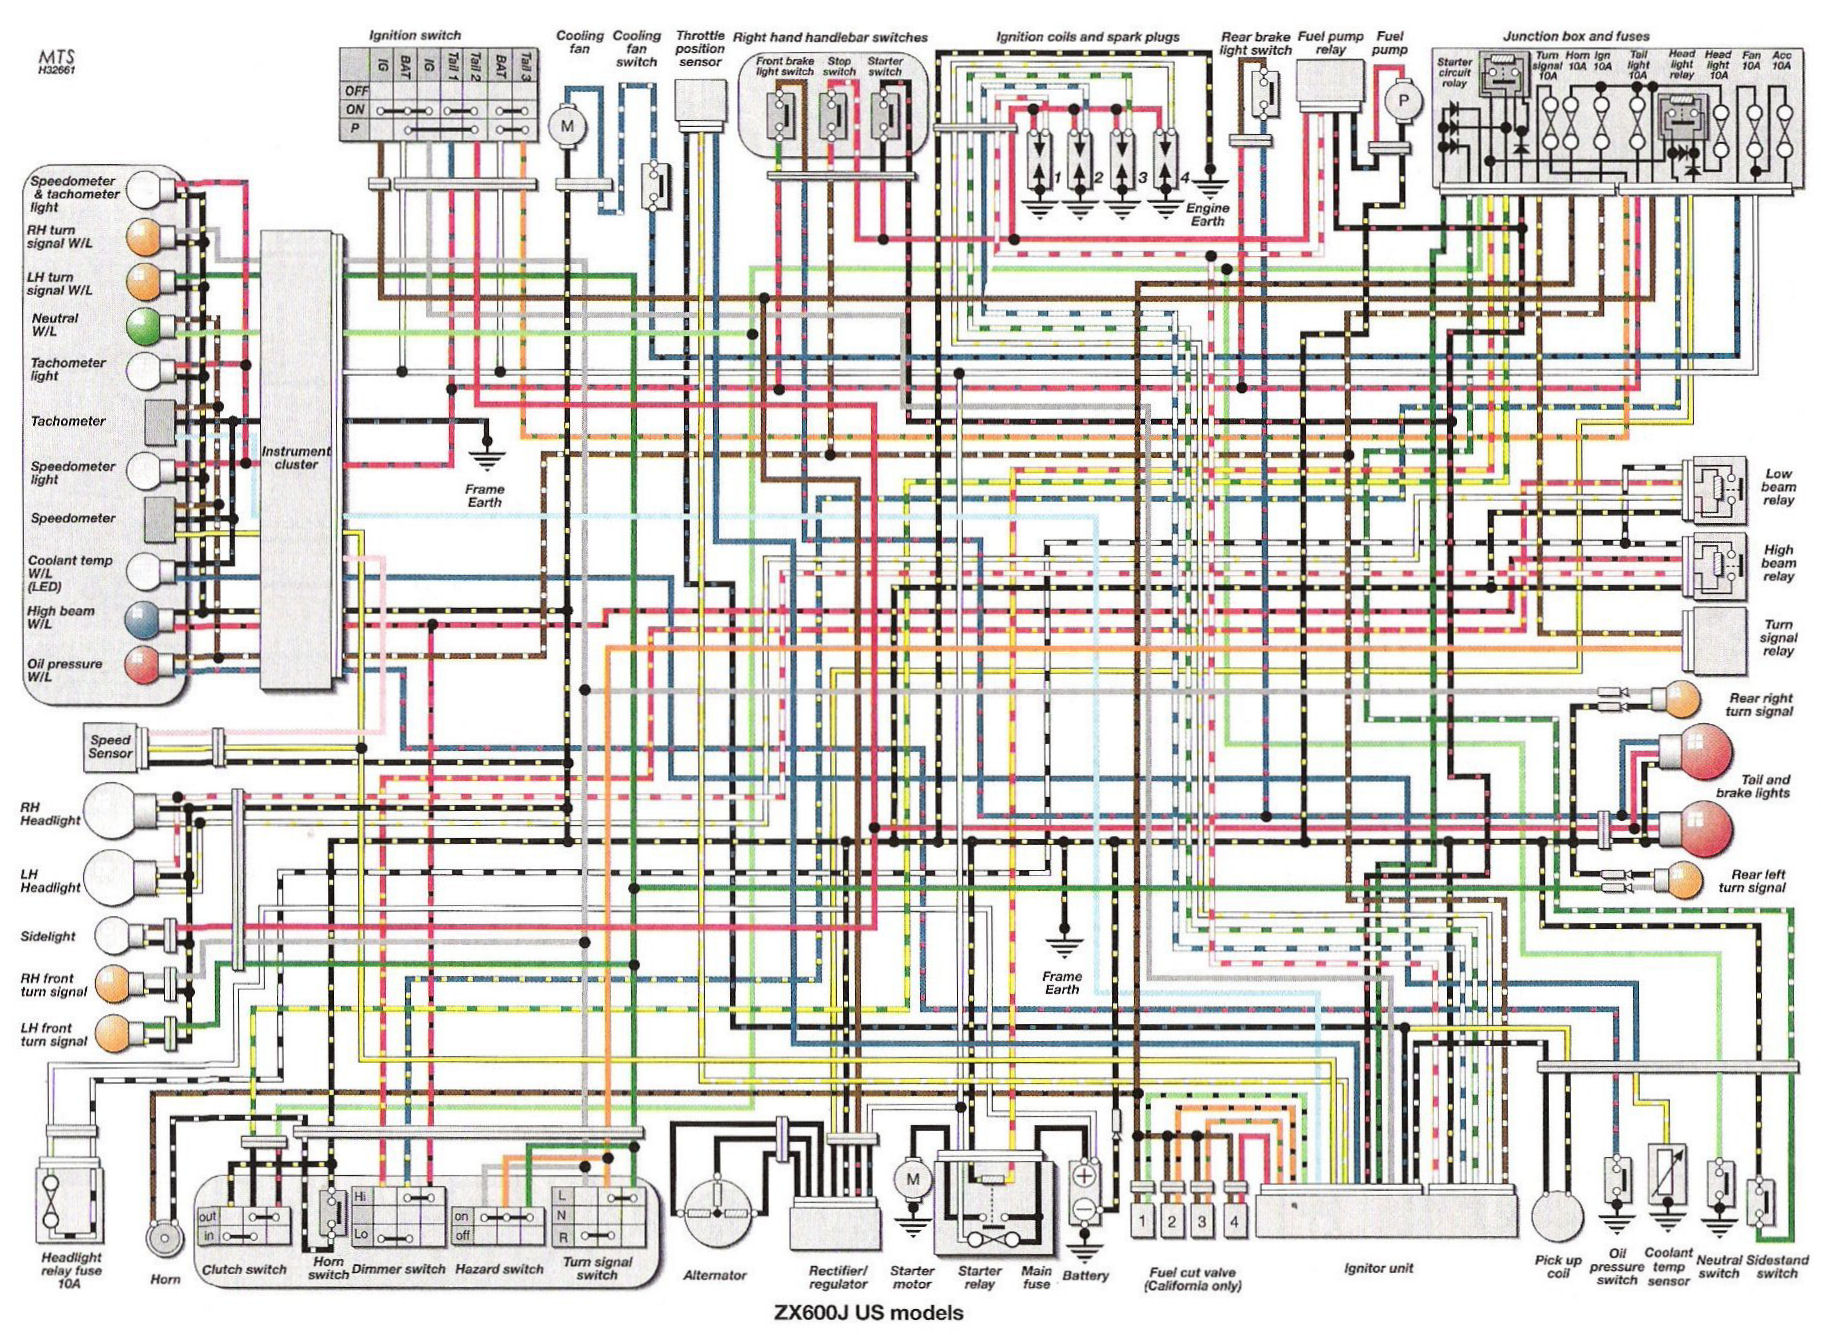 2008 Gsxr Wiring Diagram - Block And Schematic Diagrams •